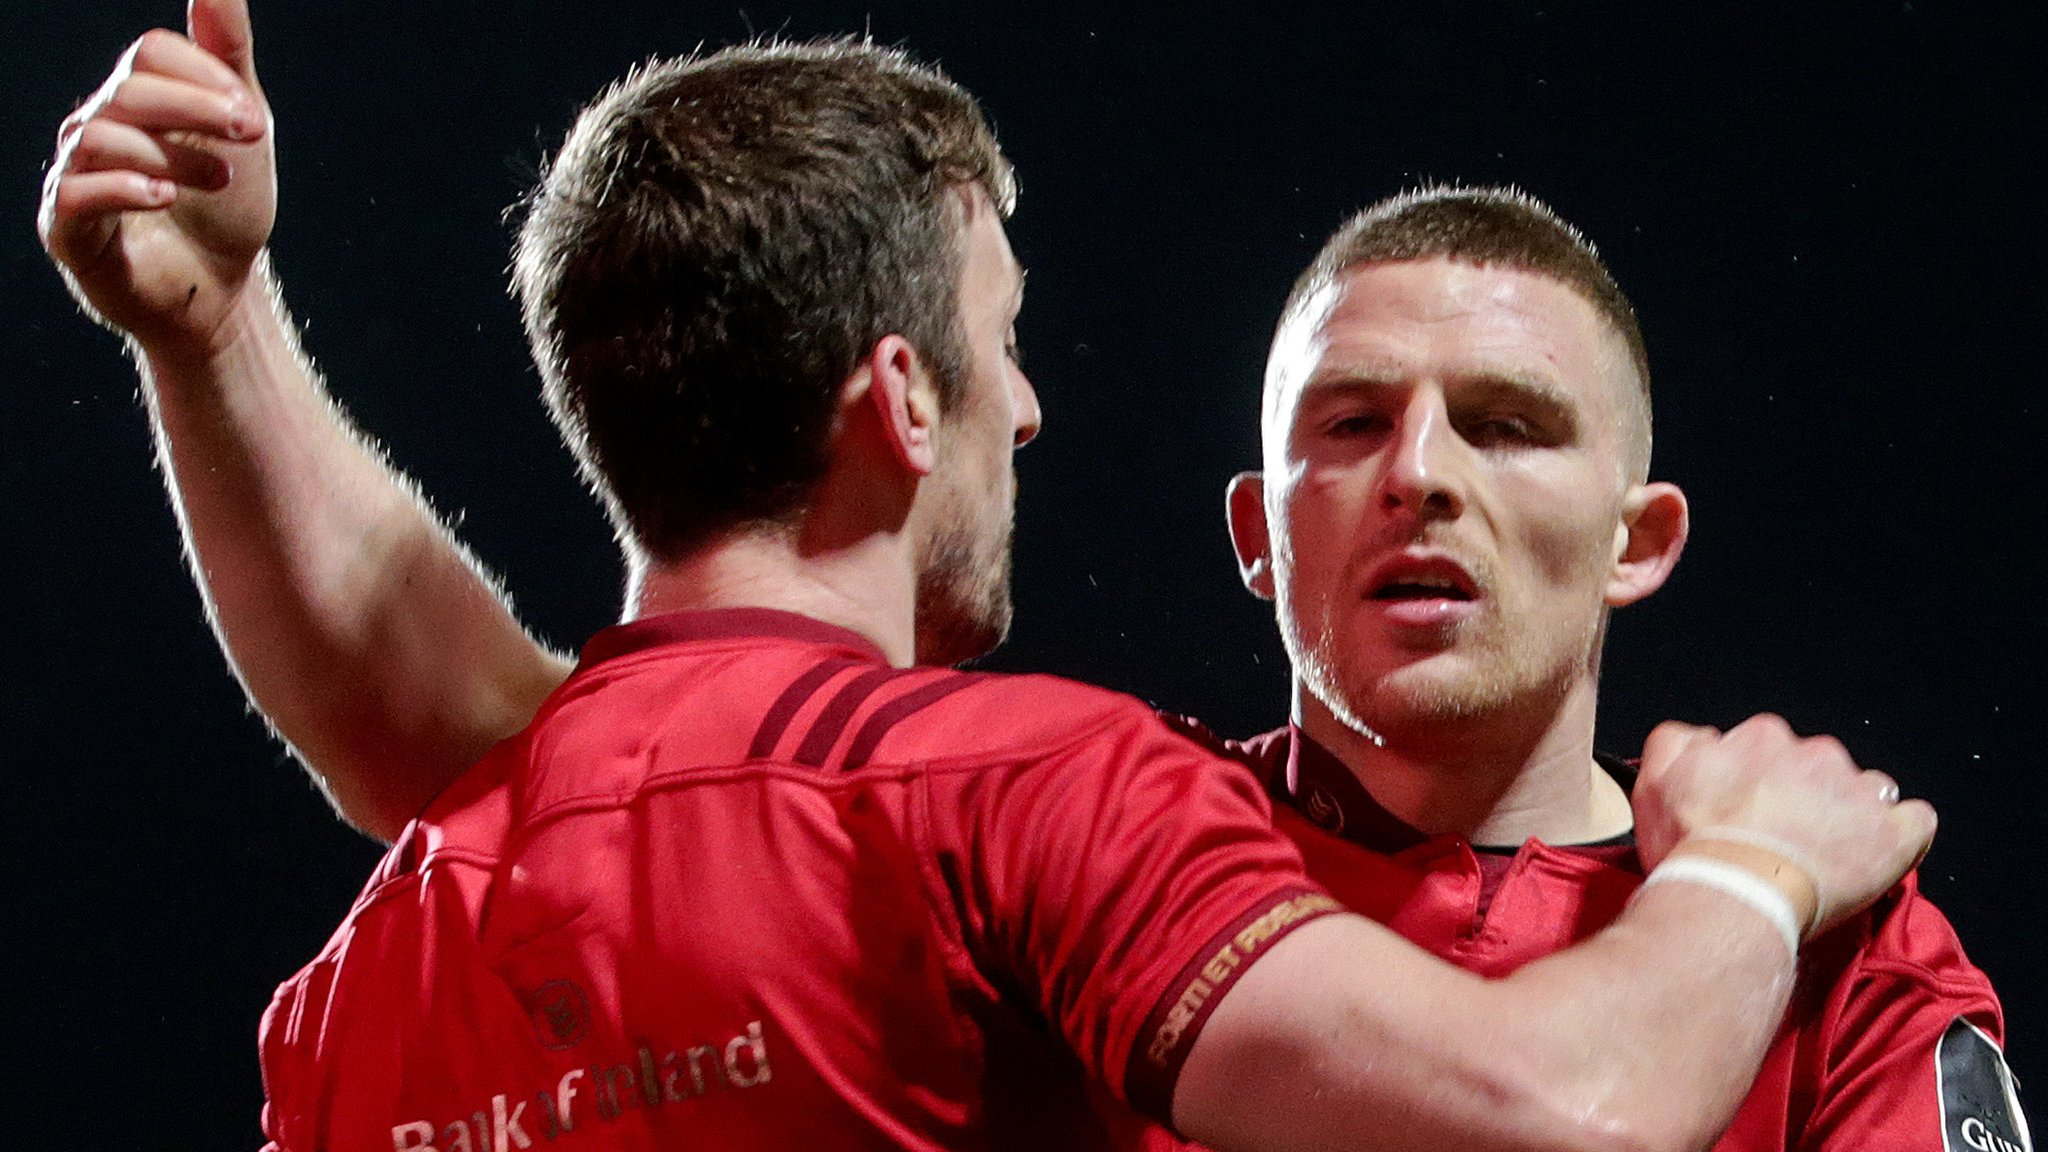 Pro14: Munster 43-0 Southern Kings - Seven-try hosts go clear at top